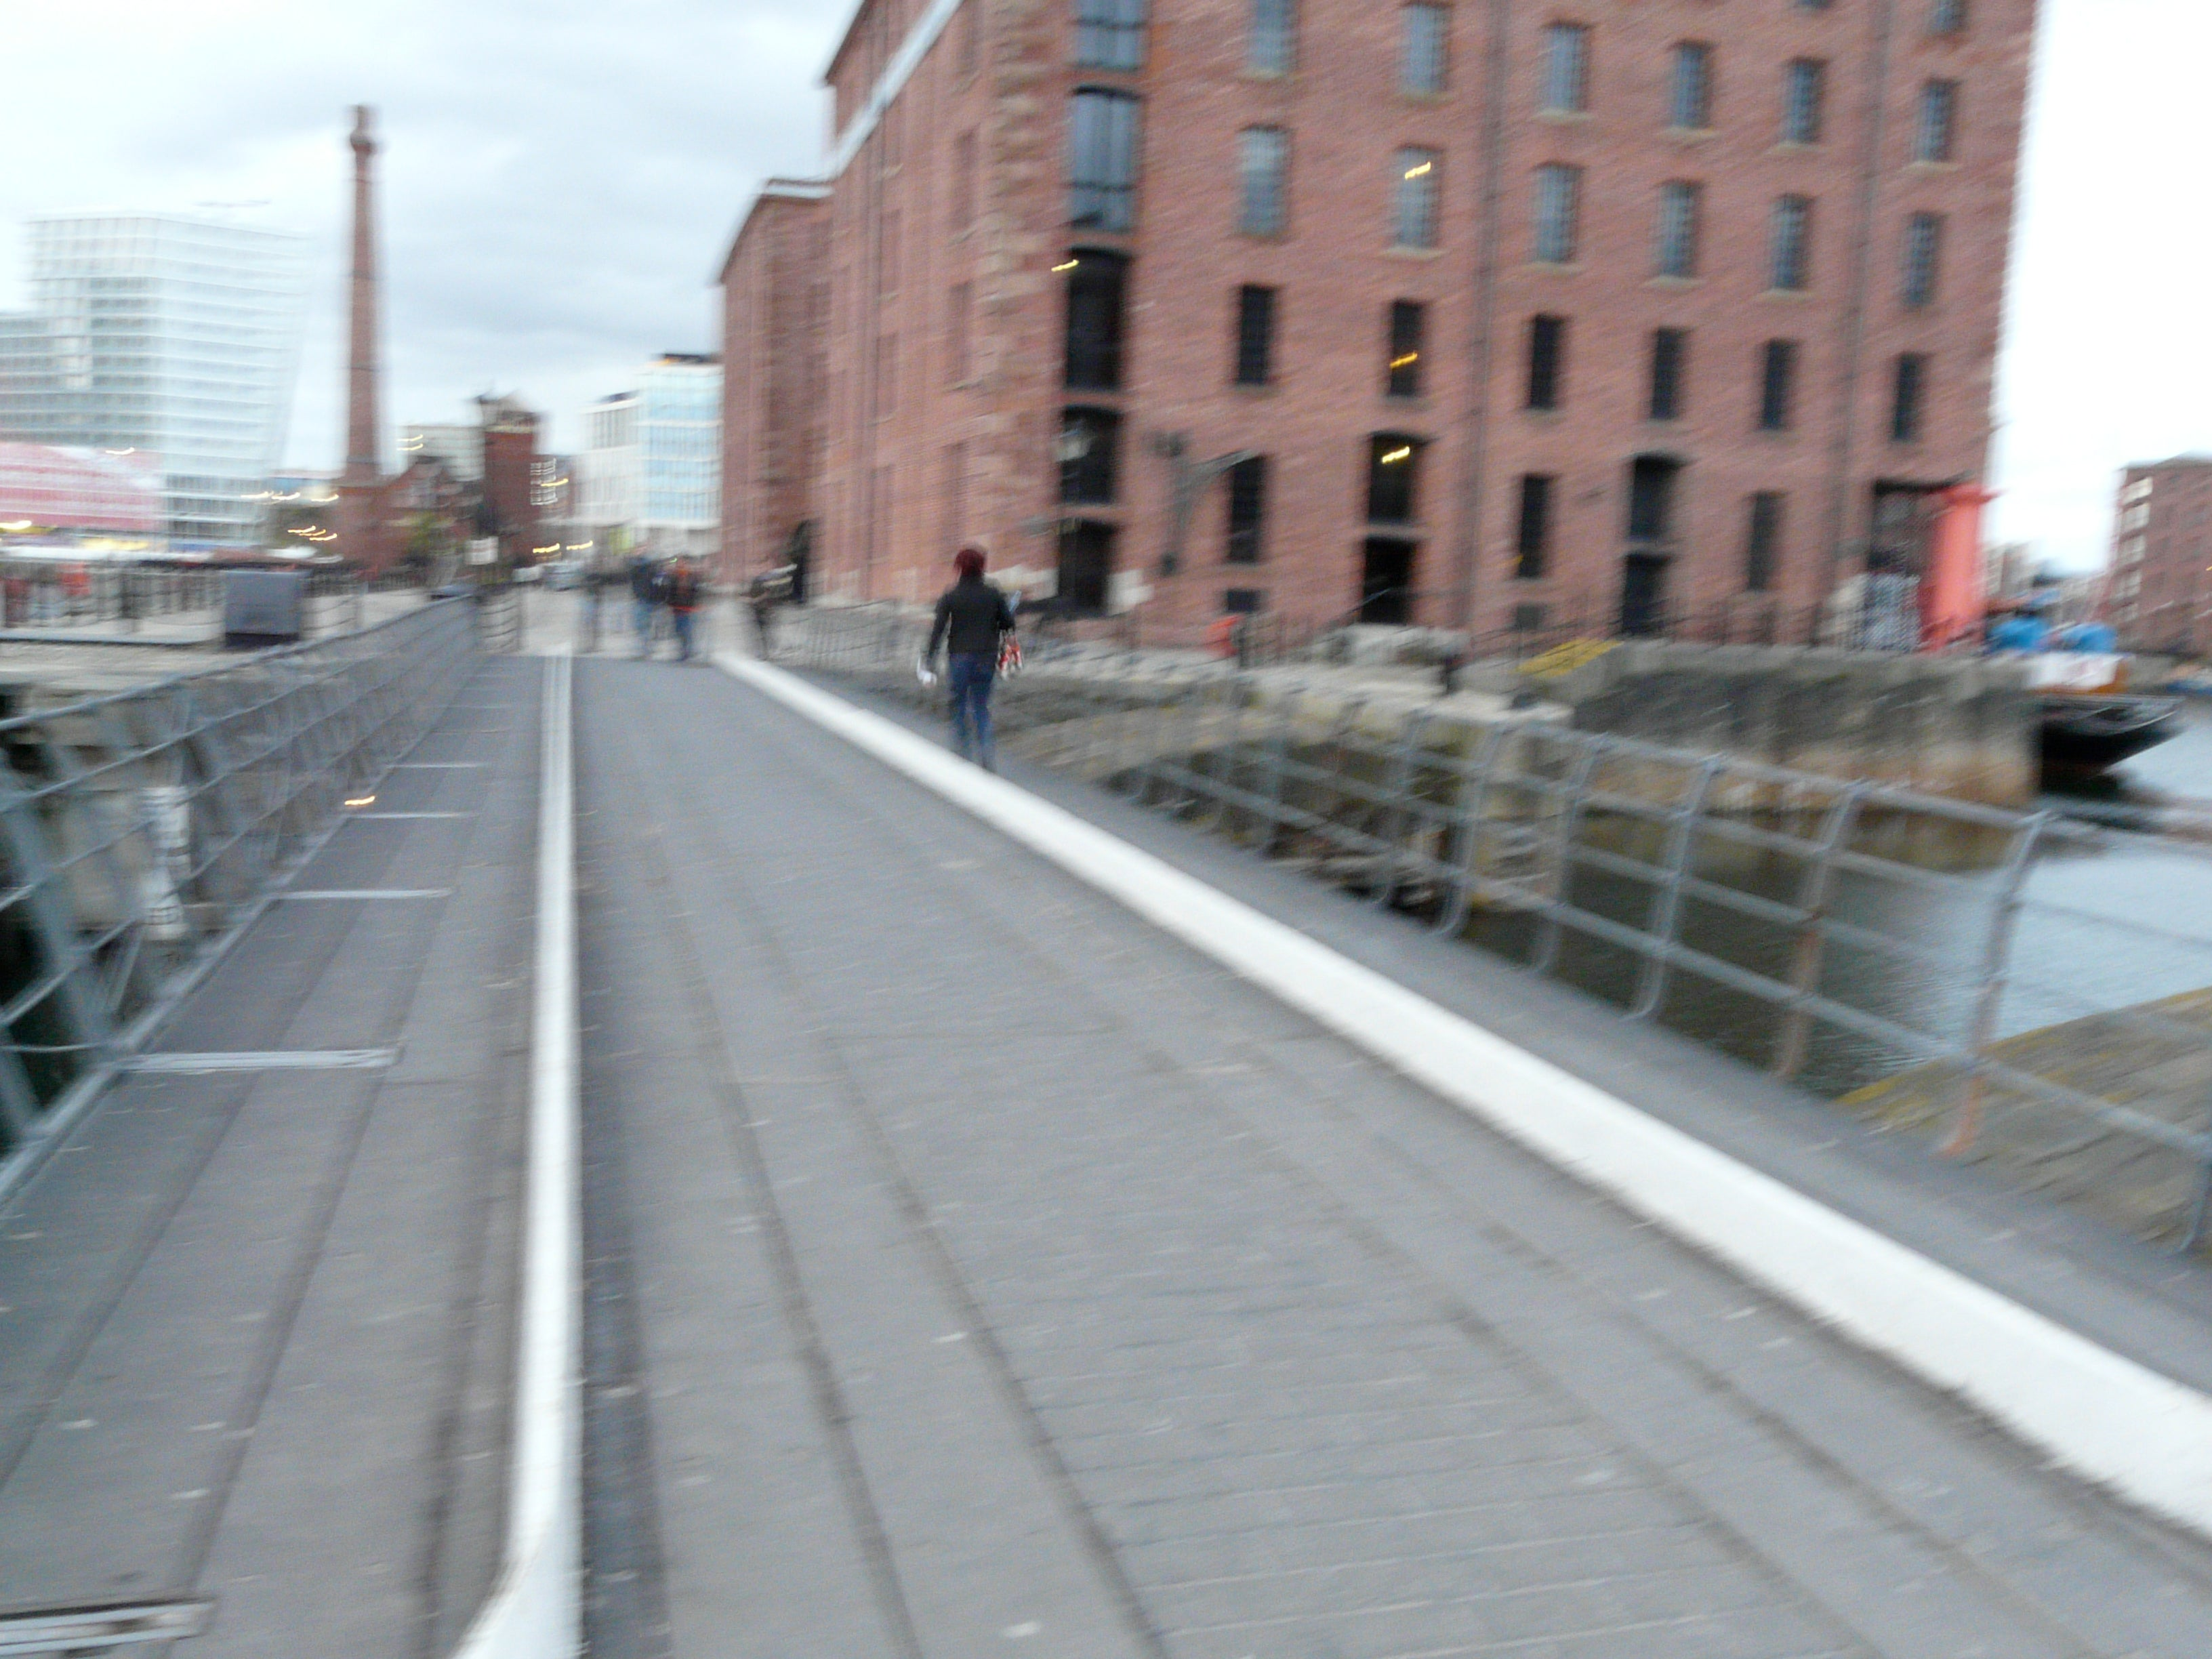 Carril en Royal Albert Dock